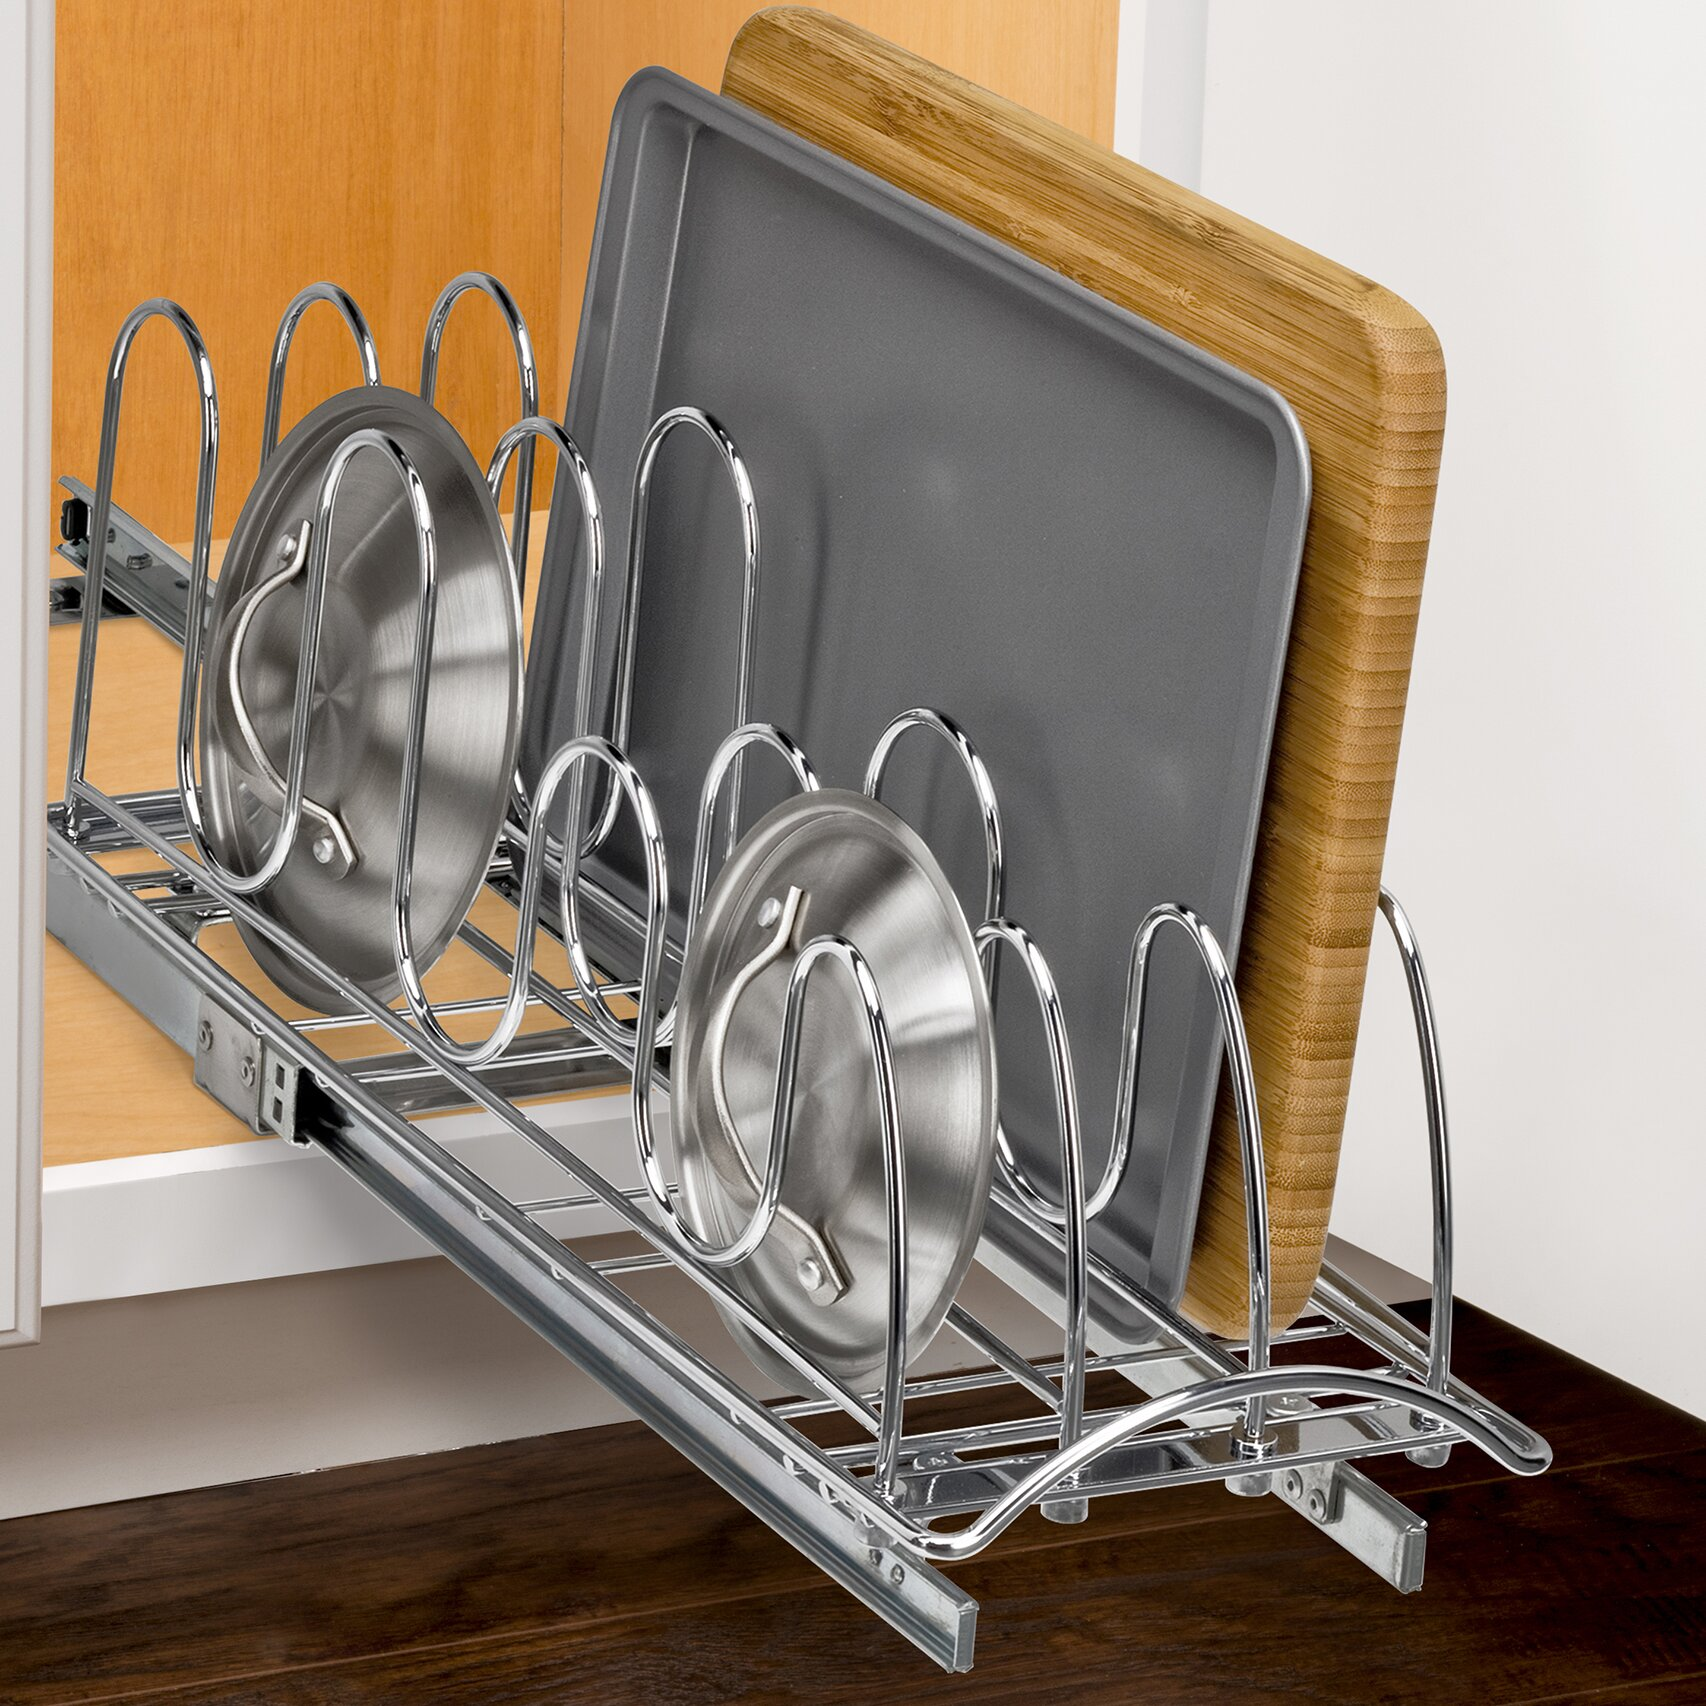 Lynk roll out pan lid holder pull out kitchen cabinet organizer rack inch wide x 21 - Cabinet pull out pot rack ...